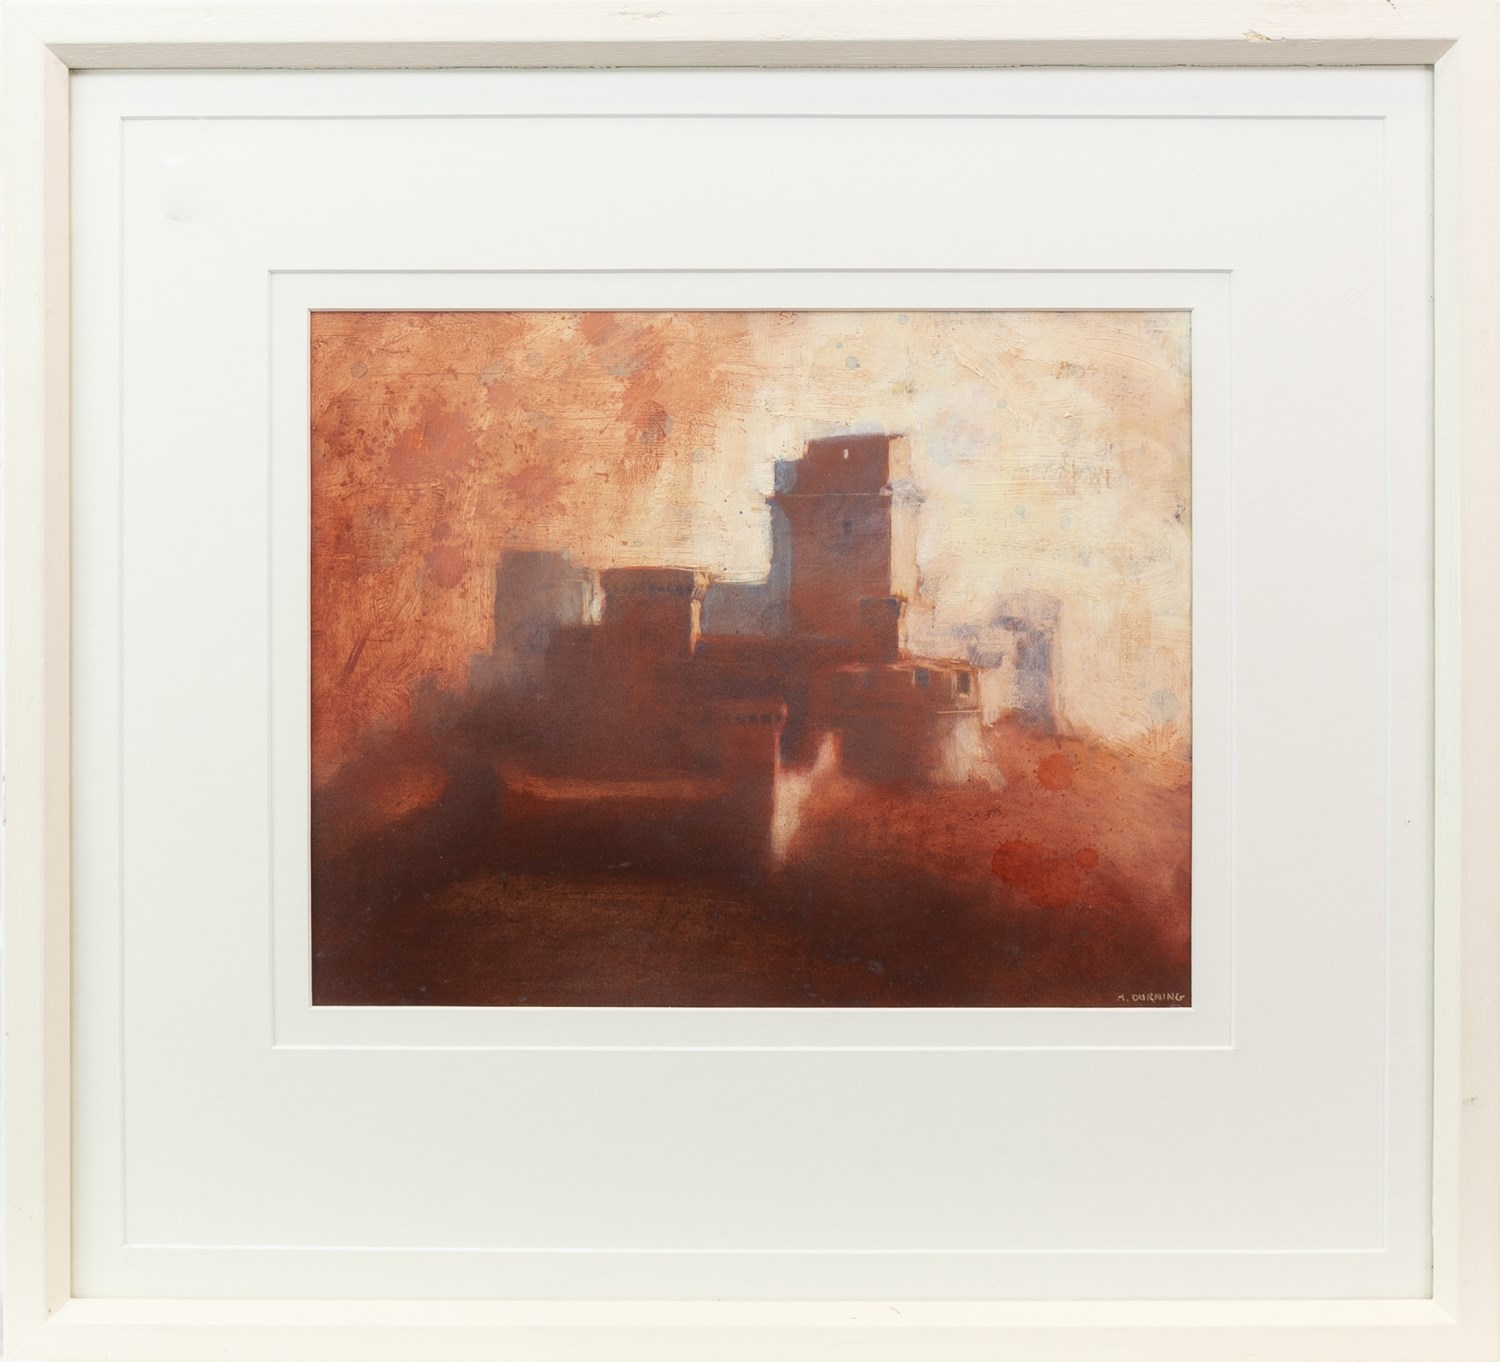 Lot 69 - ROCCA MAGCHORE, ASSISI, AN ACRYLIC ON BOARD BY MICHAEL DURNING